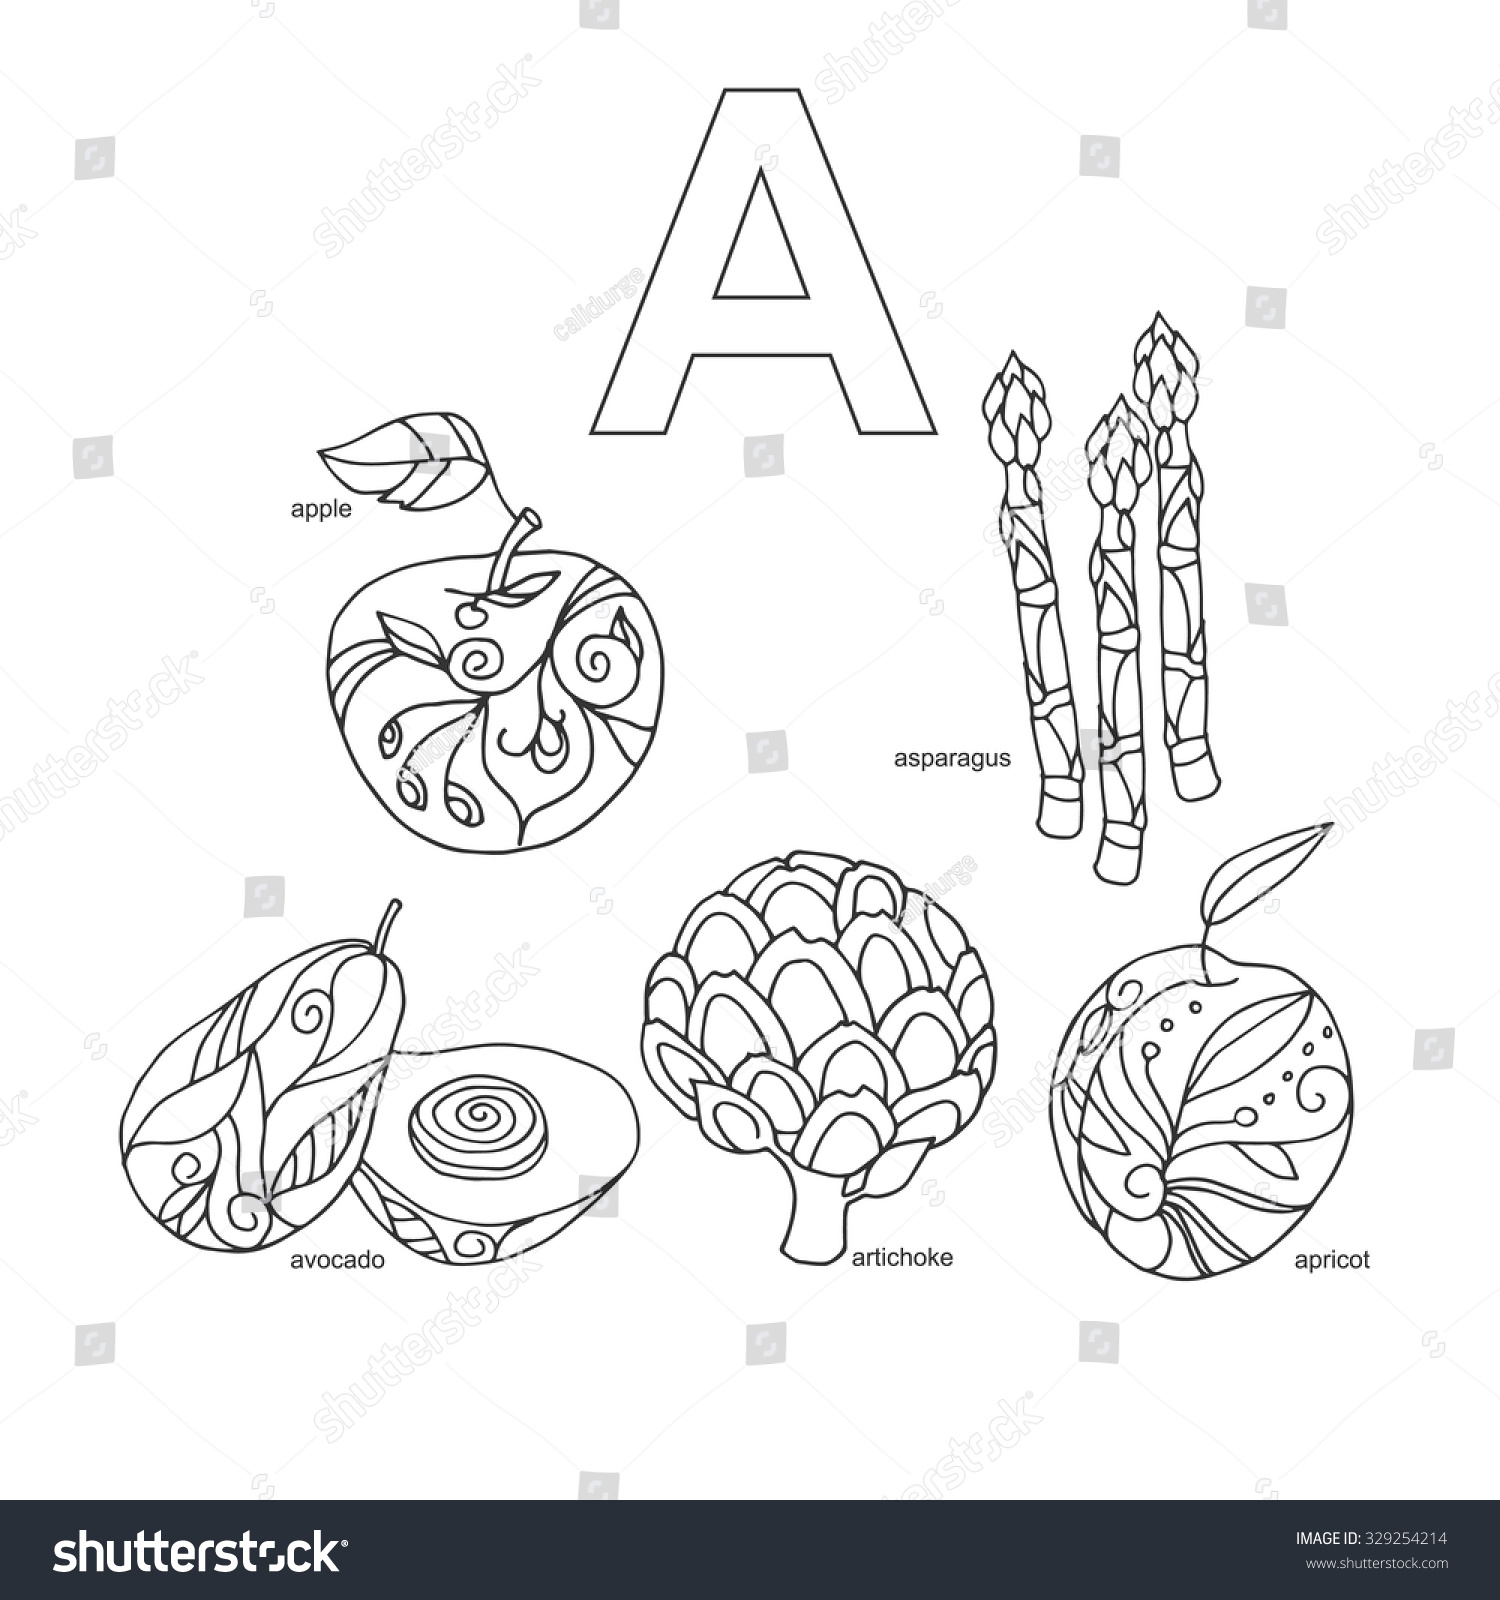 Letter a fruits and veggies words alphabet coloring page